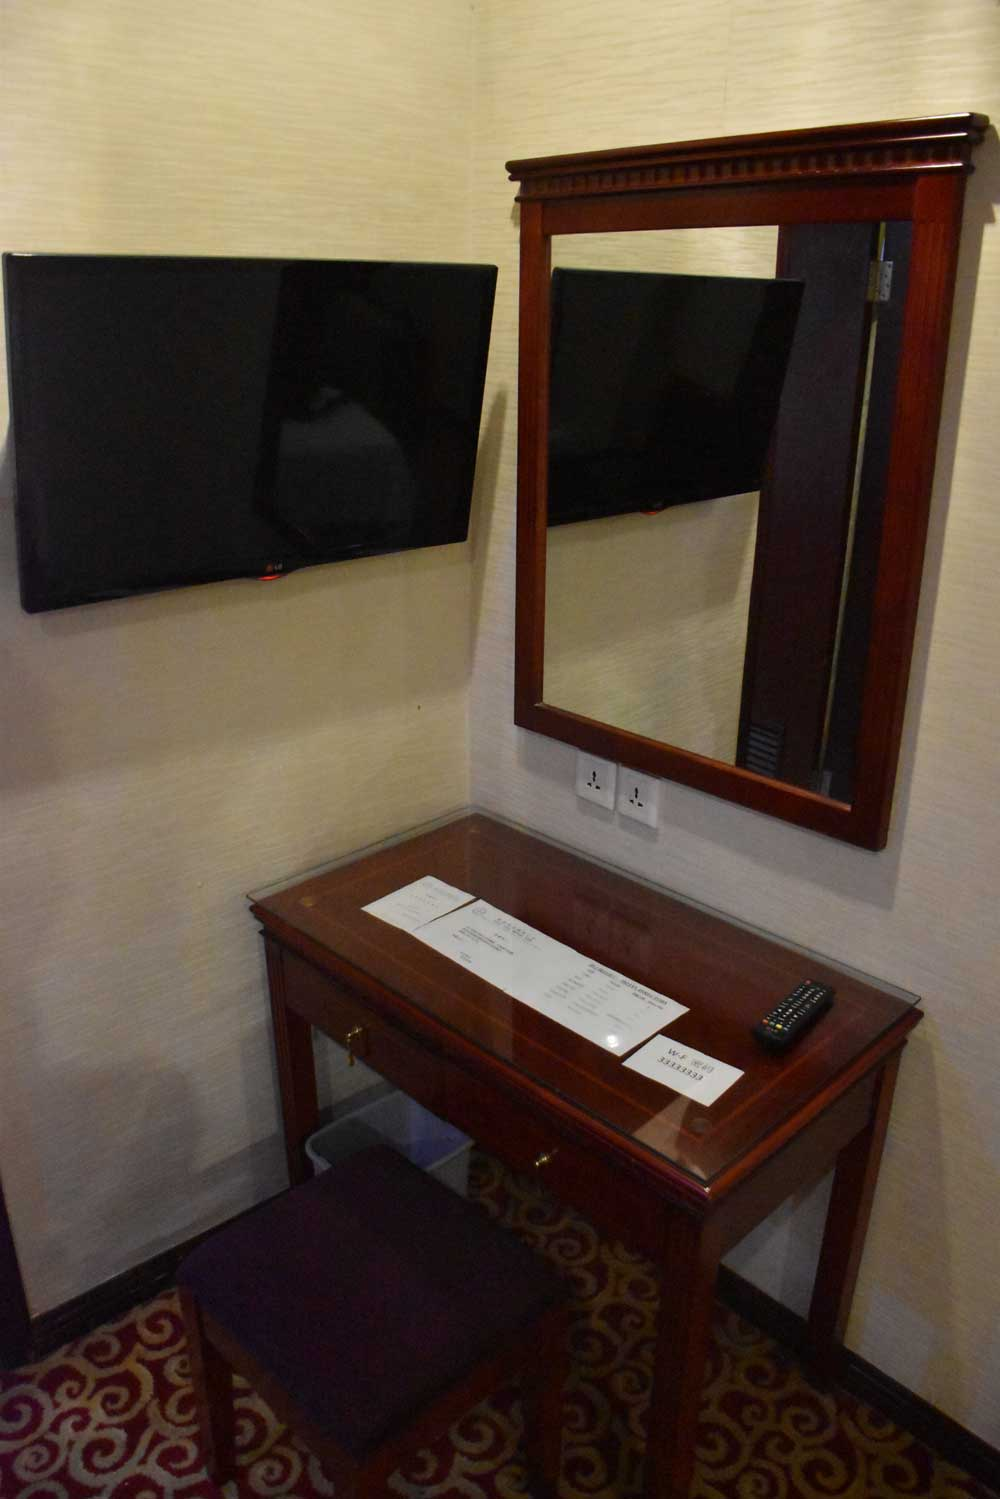 East Asia hotel desk and chair